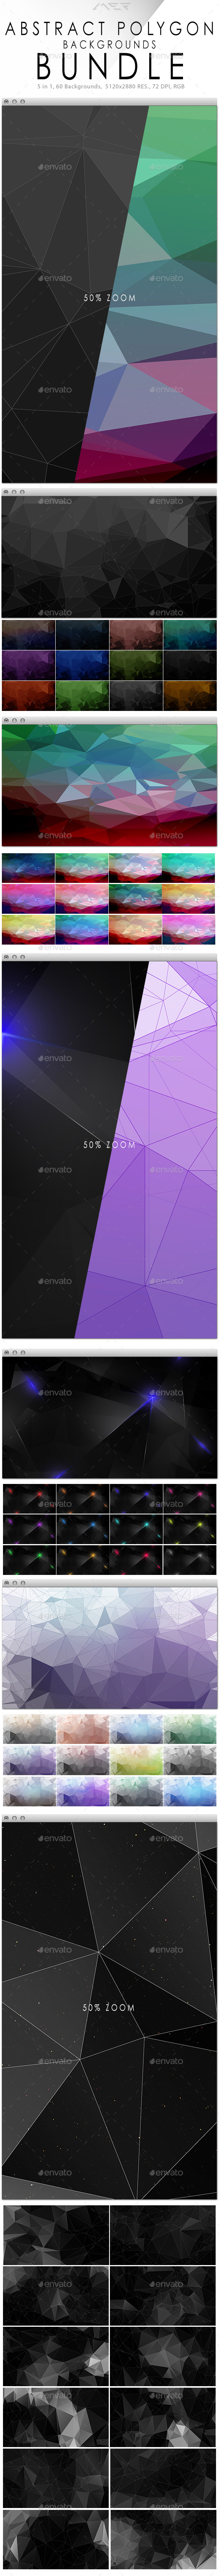 Abstract Polygon Backgrounds Bundle           - Abstract Backgrounds